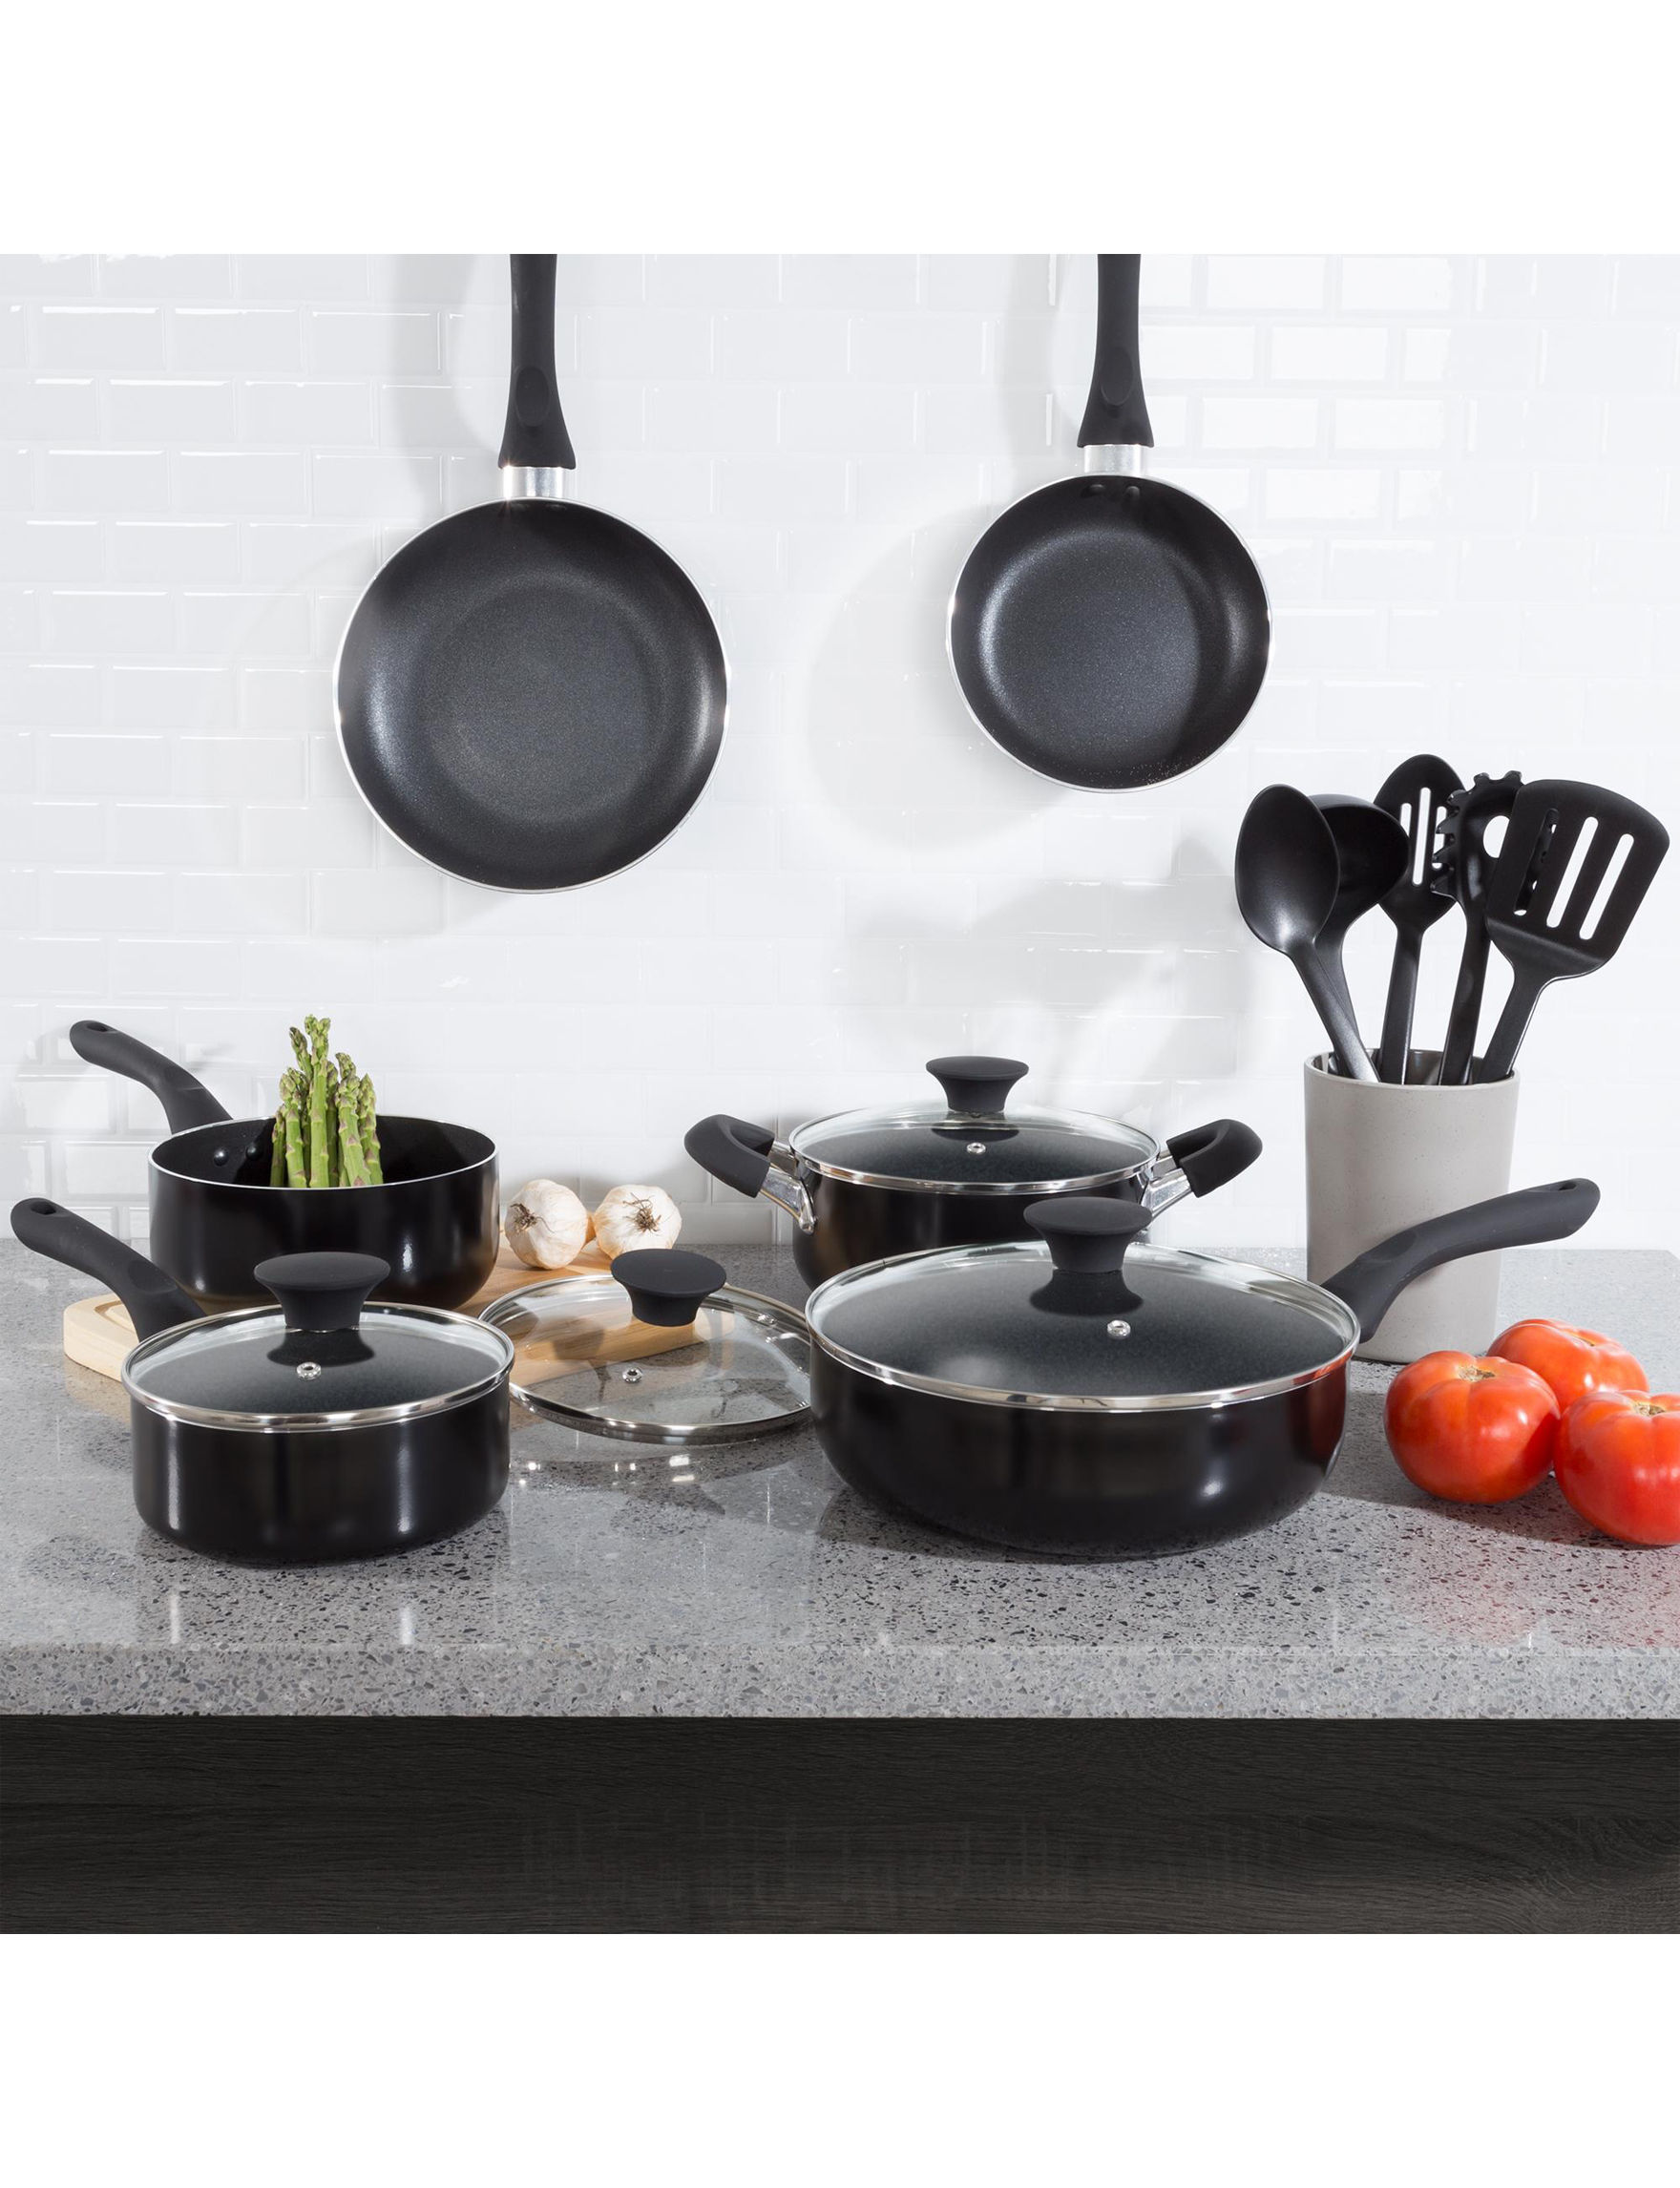 Classic Cuisine Black Cookware Sets Frying Pans & Skillets Kitchen Utensils Cookware